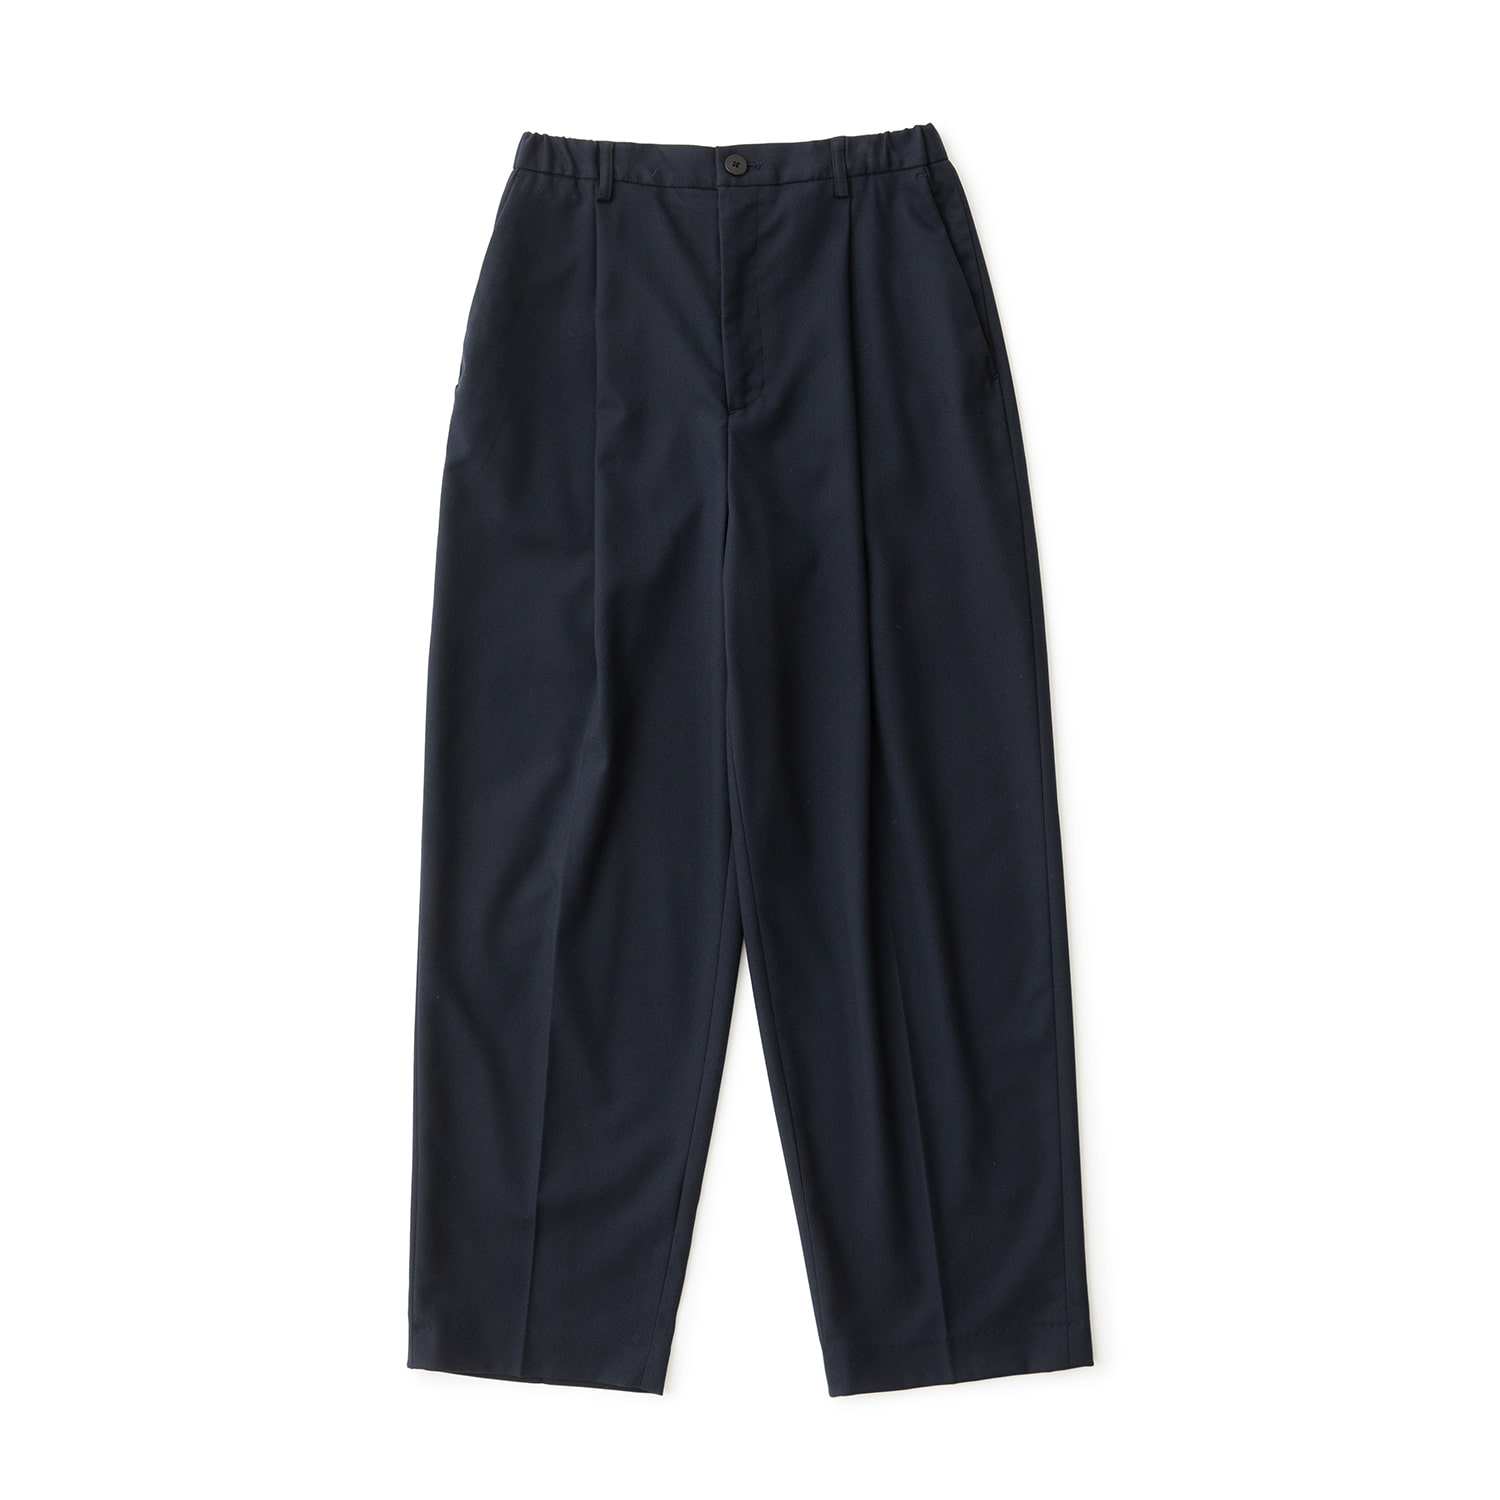 Calm Banded Pants (Navy)